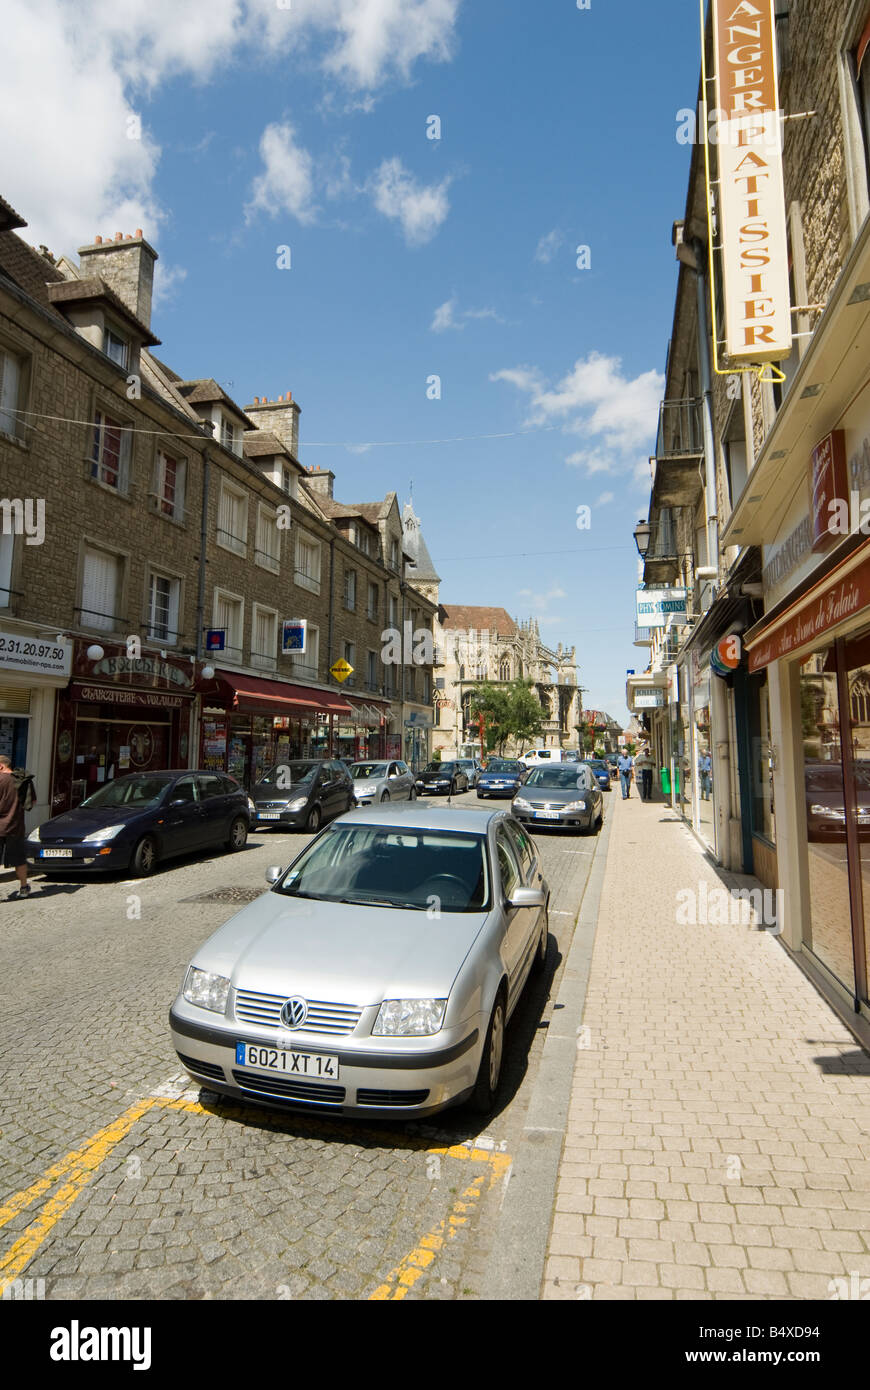 Cars parked in a street in the french town of Falaise Normandy France Stock Photo